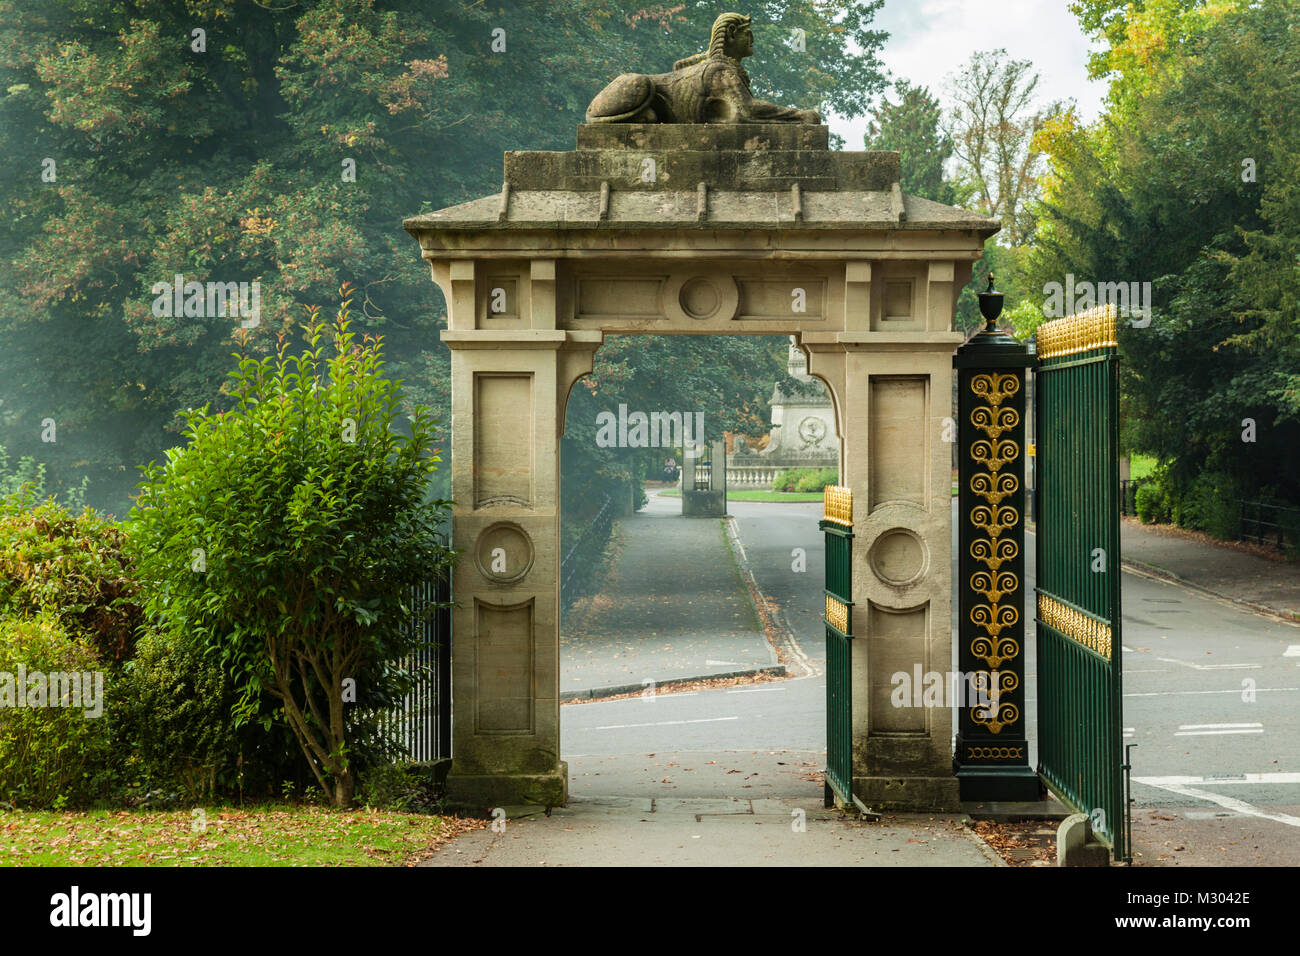 Gate à Victoria Park, Bath, Somerset, Angleterre. Photo Stock